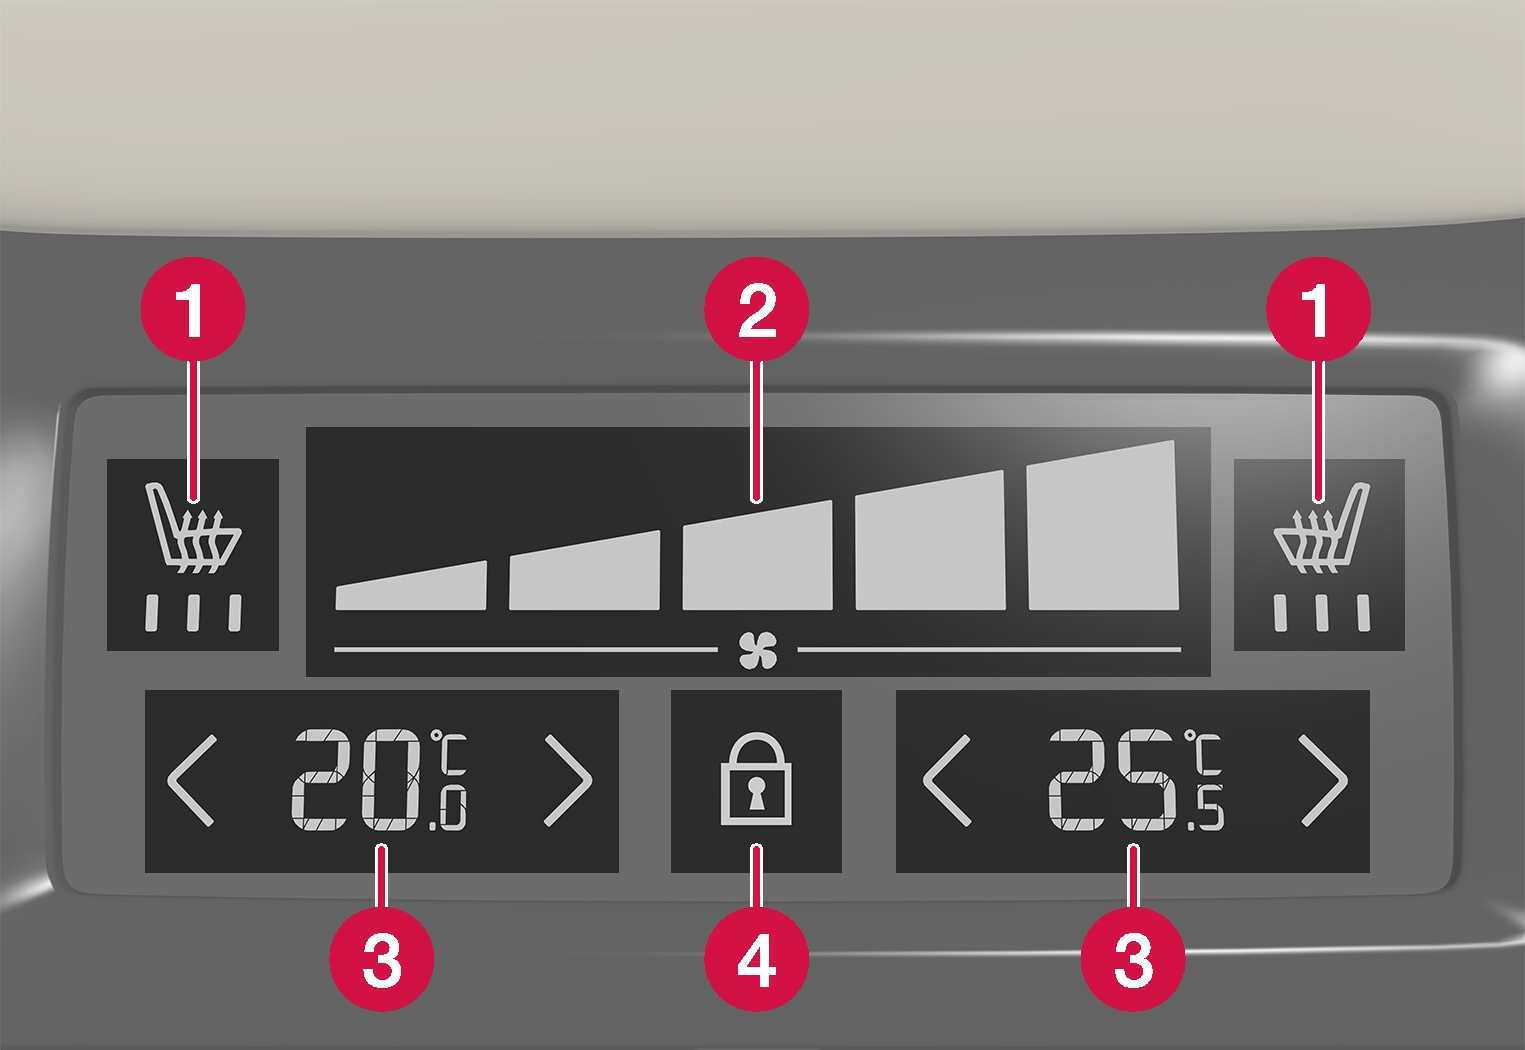 P5-1717–Climate–Rear climate controls